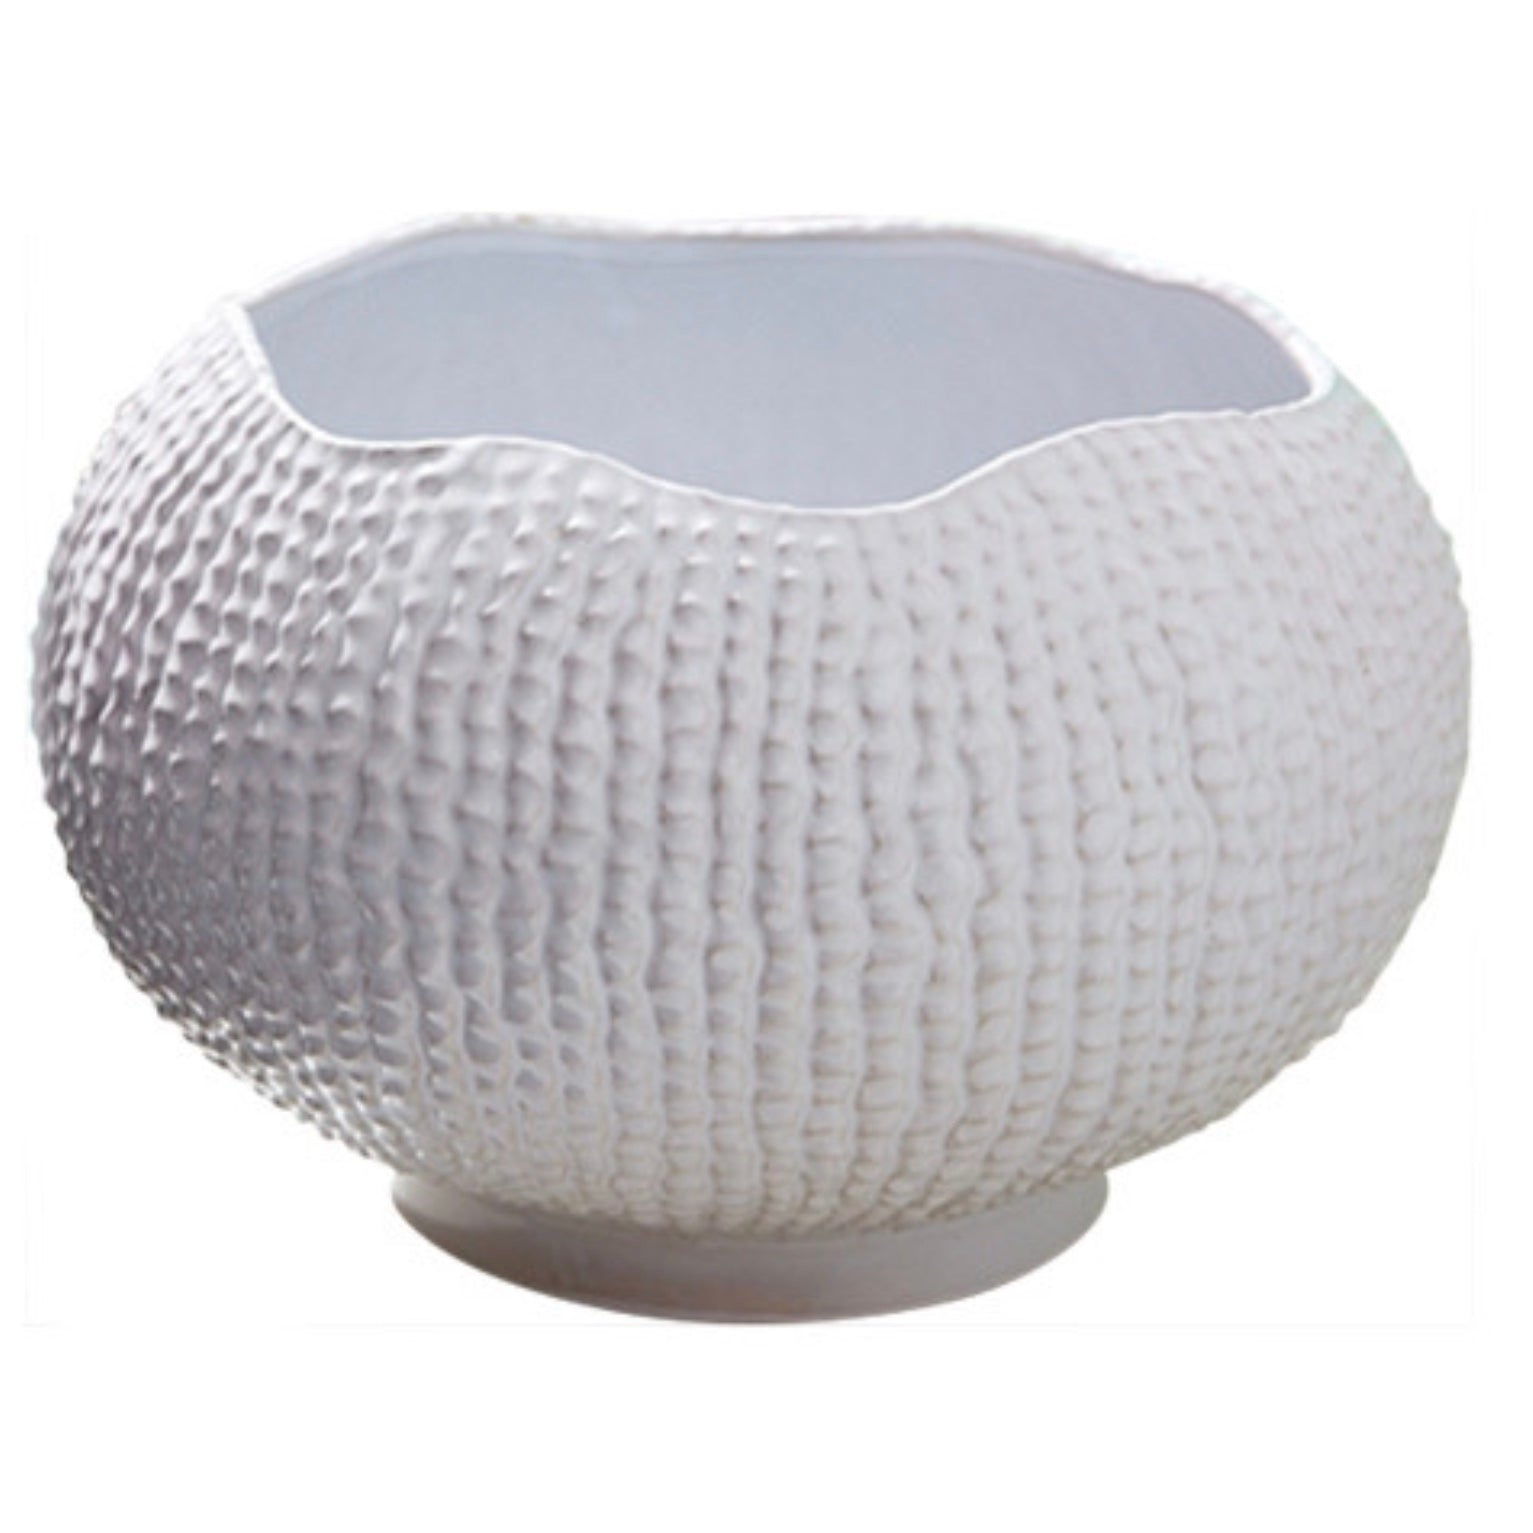 Tozai White Ceramic Sea Urchin Bowl, TH-Tozai Home, Putti Fine Furnishings